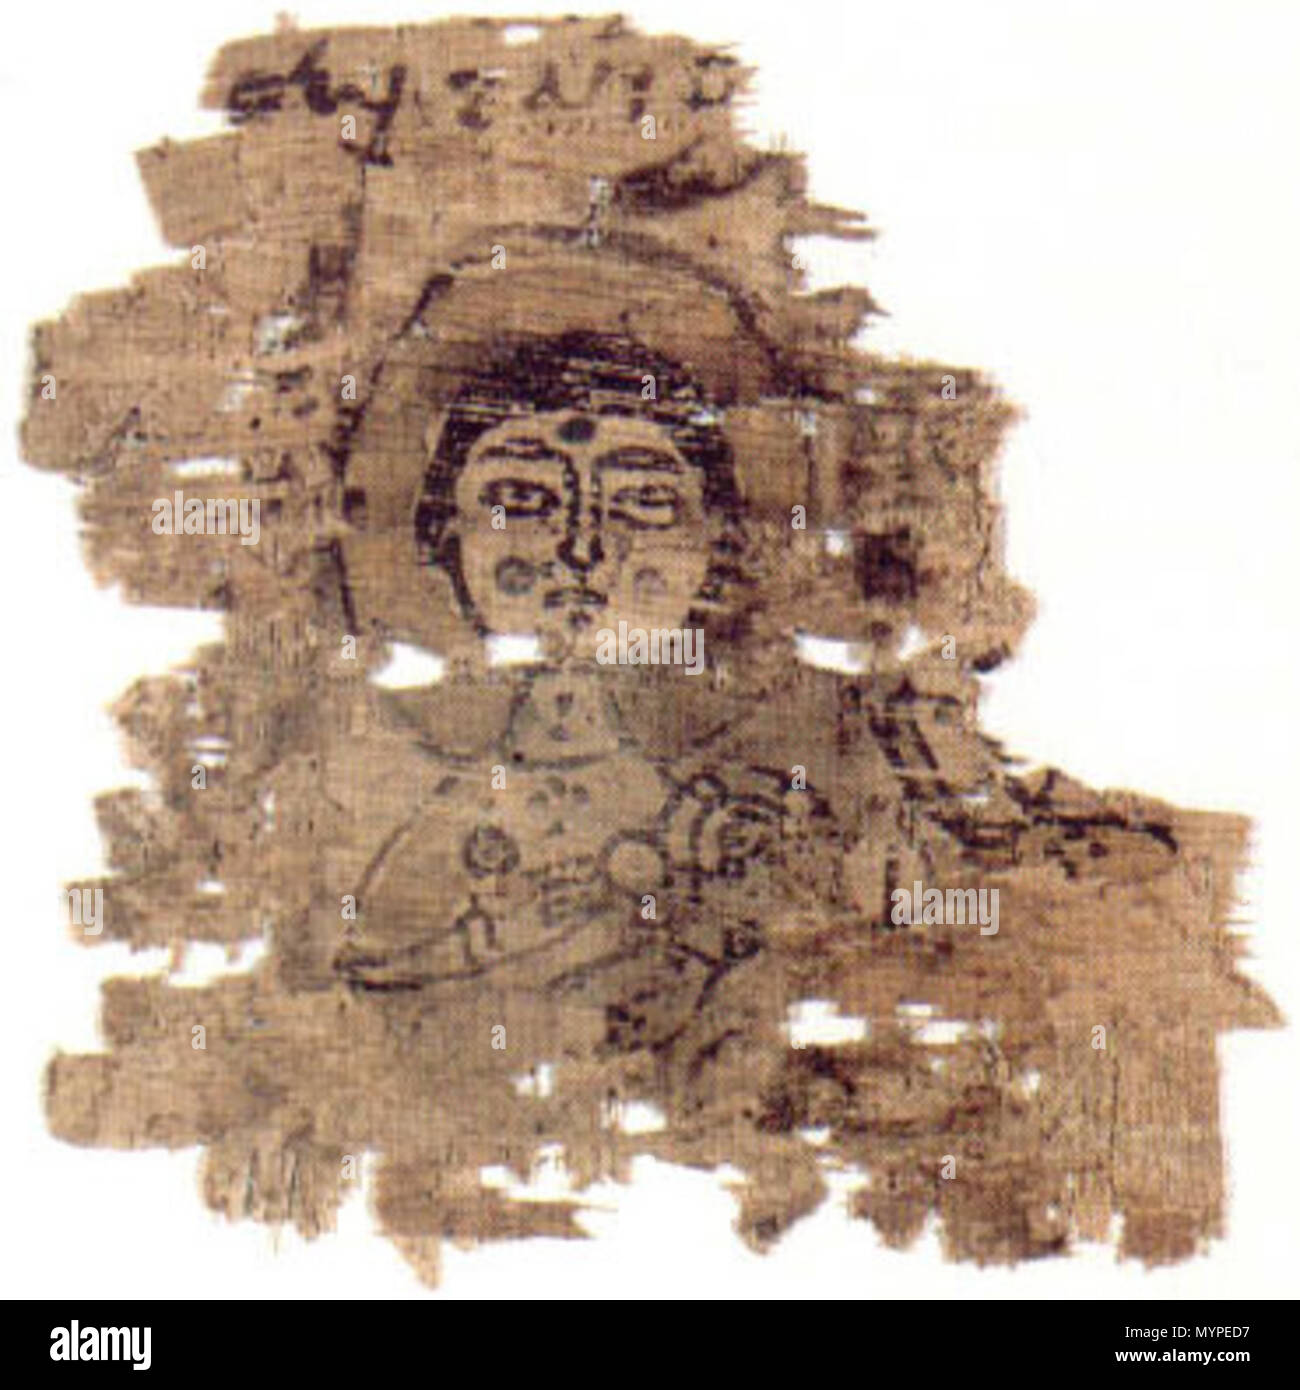 . English: Papyrus PSI 1574. Madonna lactans. Girolamo Vitelli Papyrological Institute, Museo archeologico nazionale, Florence, inv. 2458. 6th century. Unknown 440 PSI XV 1574 Madonna lactans - Stock Image